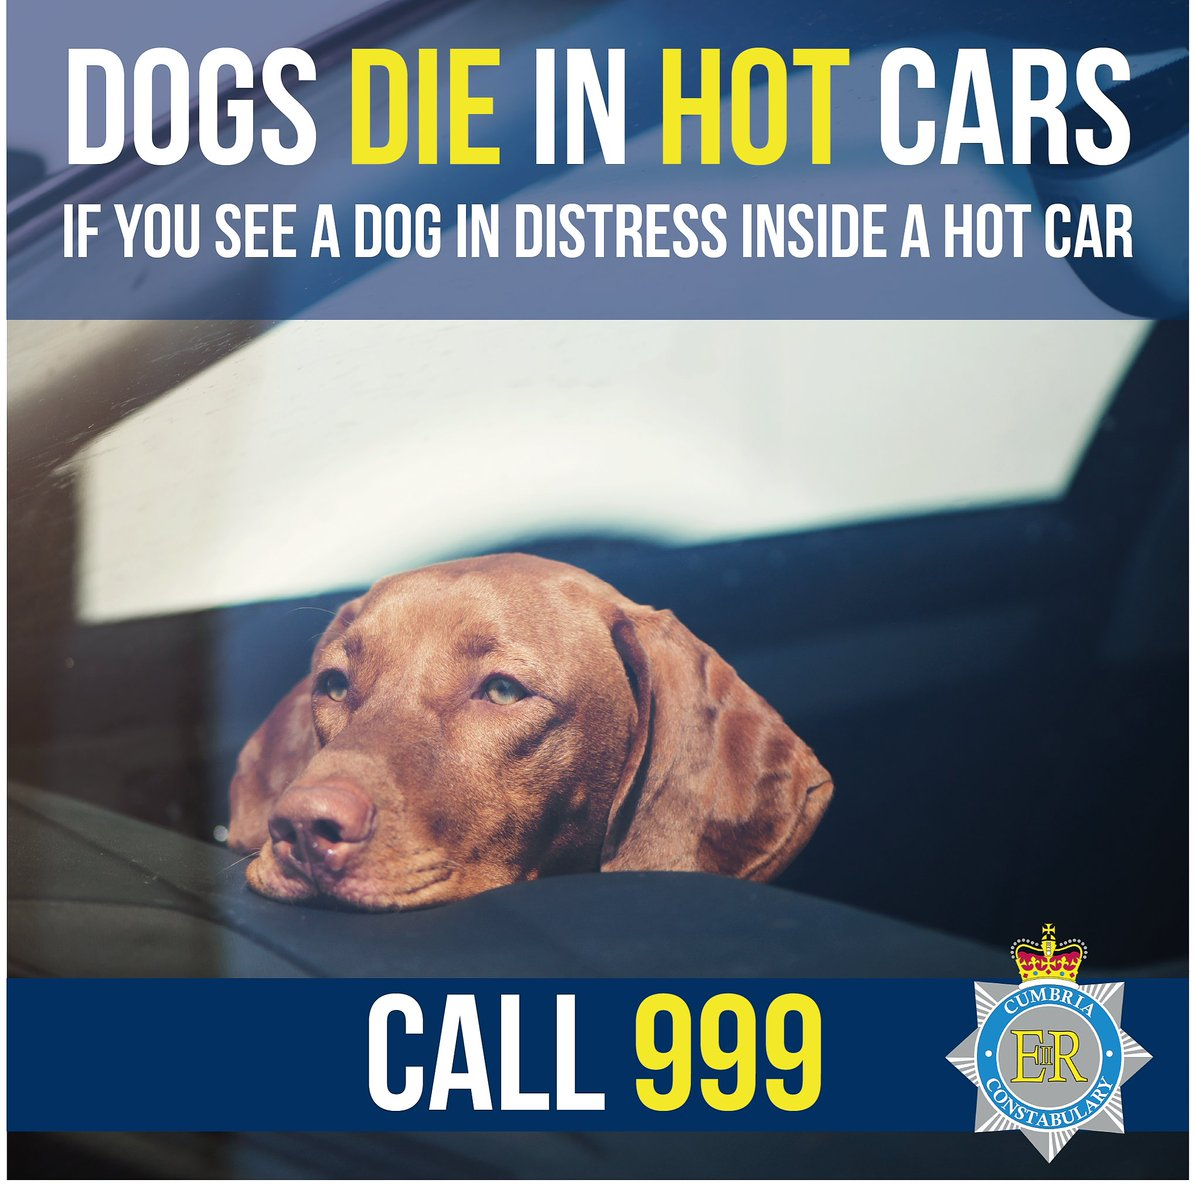 ❗ Dog's can die if left in hot cars❗ If you see a dog in a hot car in distress, call 999